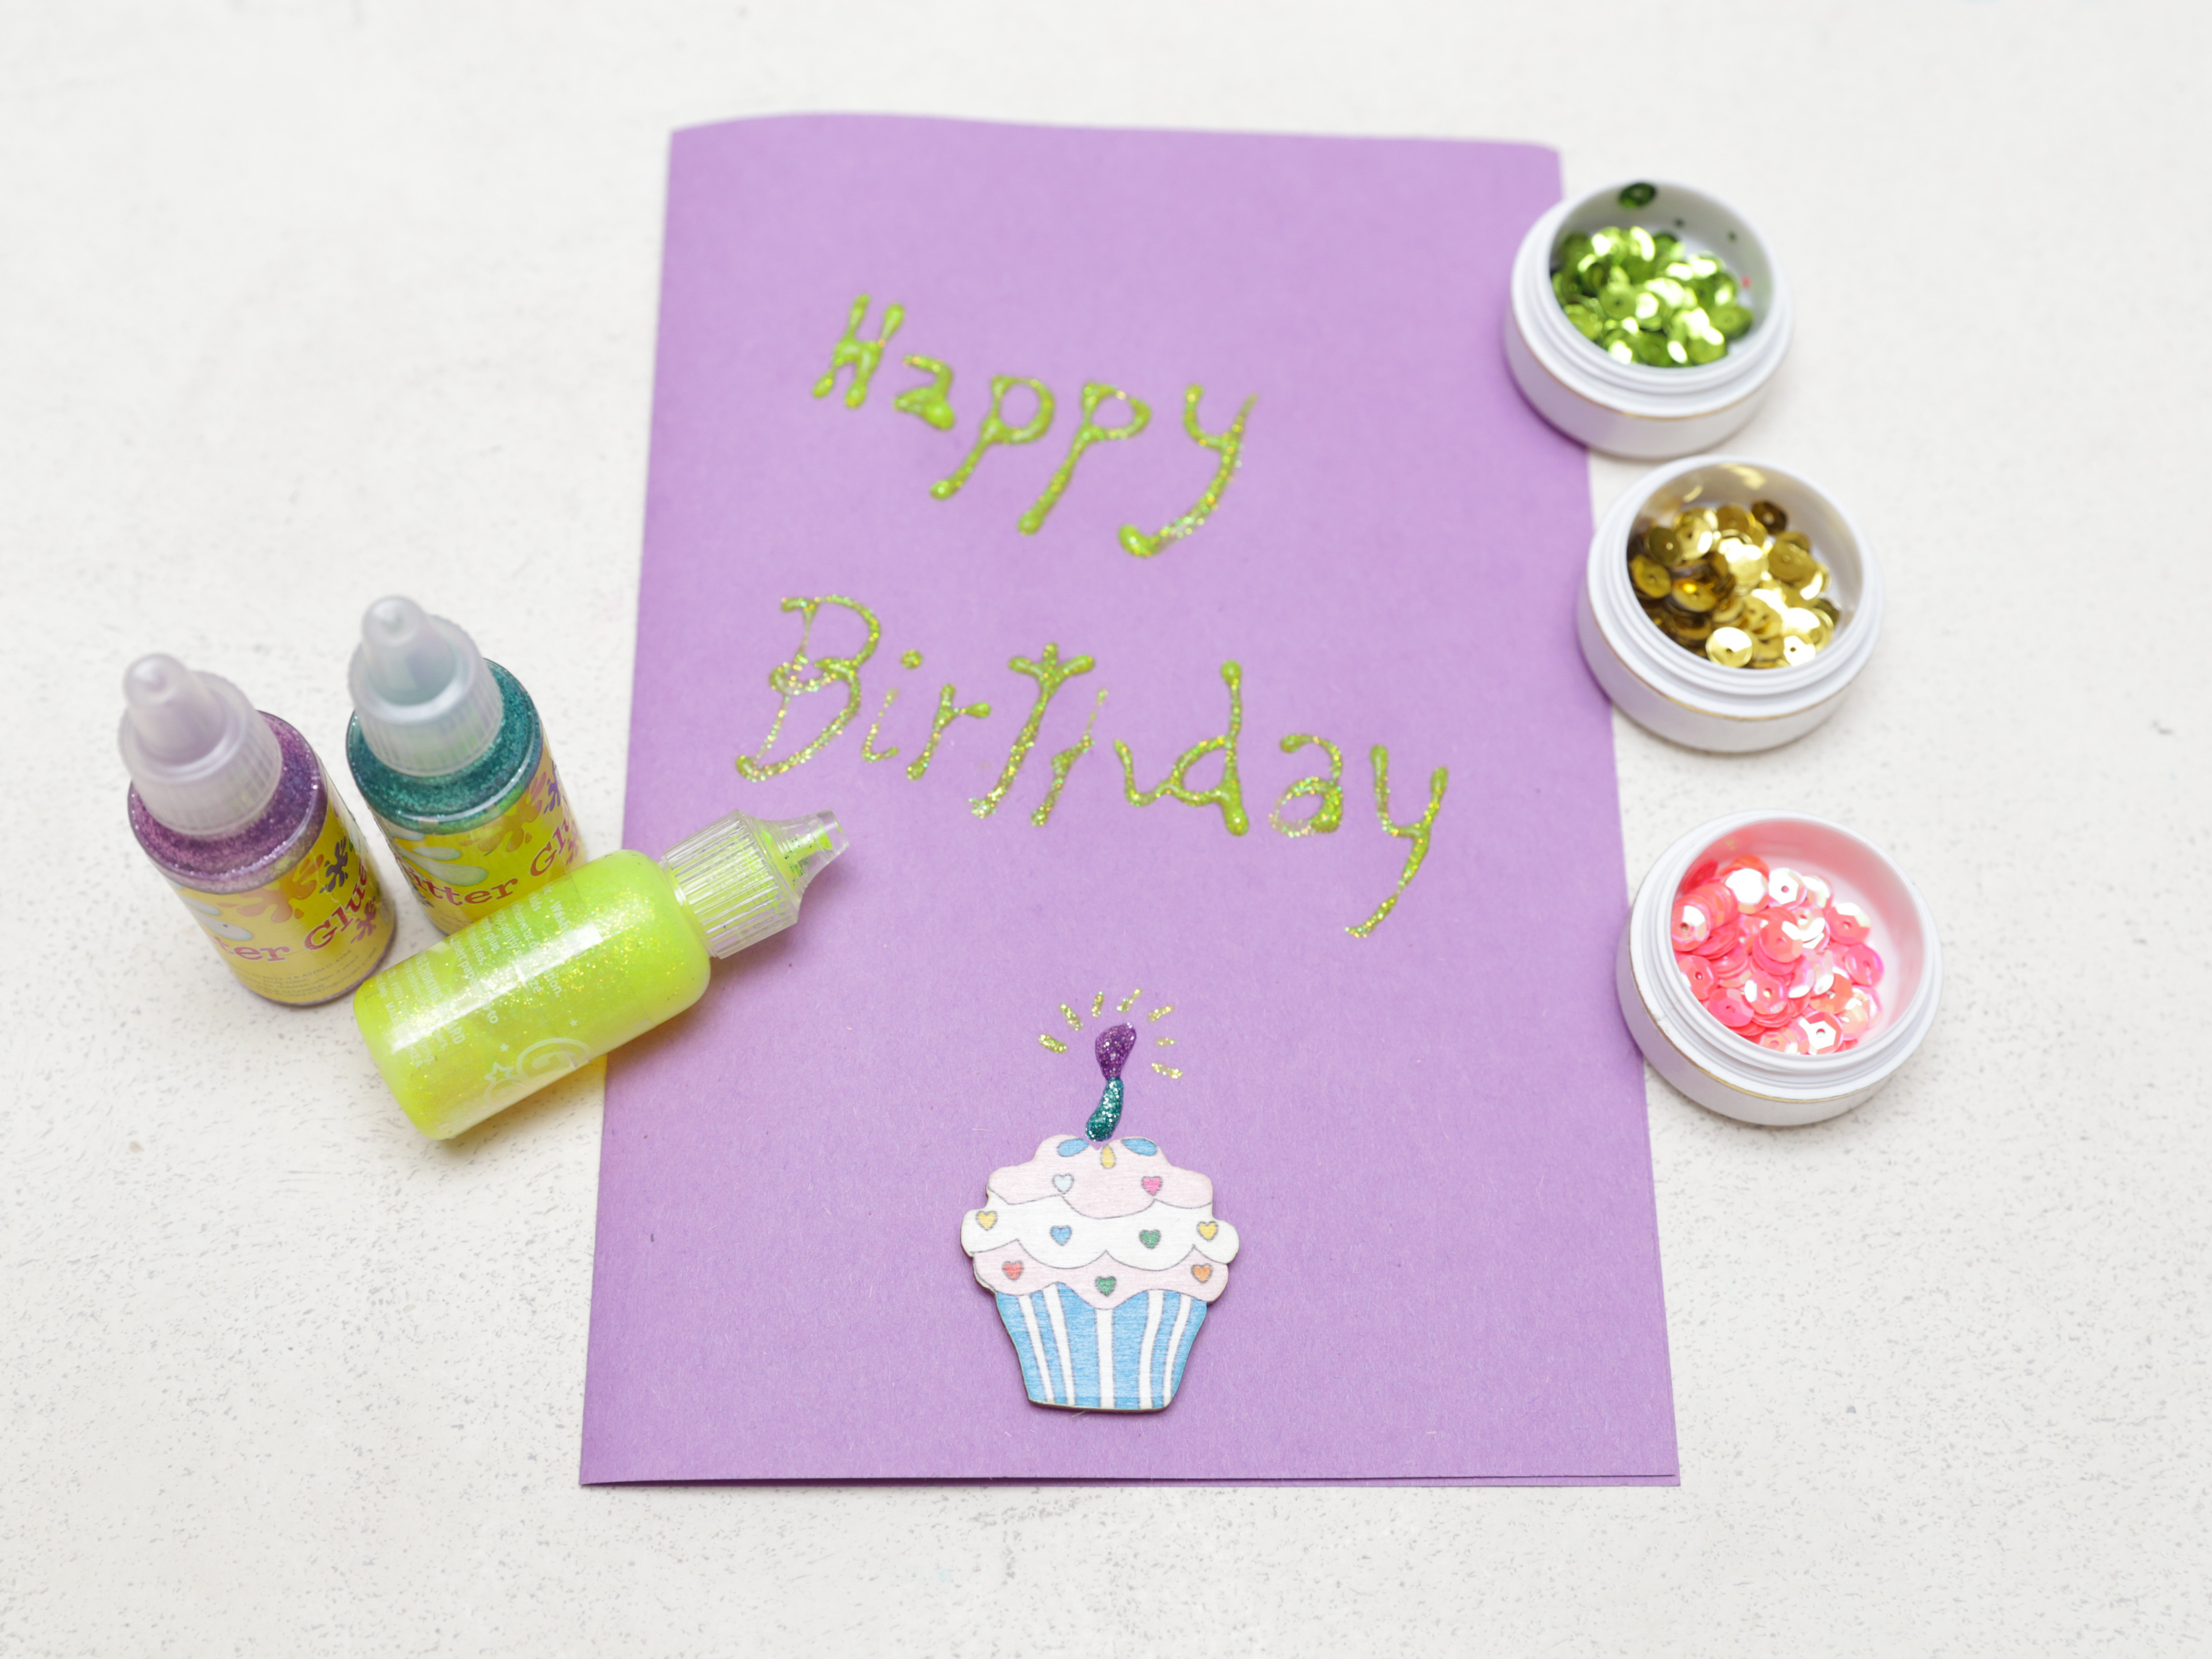 Handmade Birthday Invitation Cards Ideas How To Make A Simple Handmade Birthday Card 15 Steps